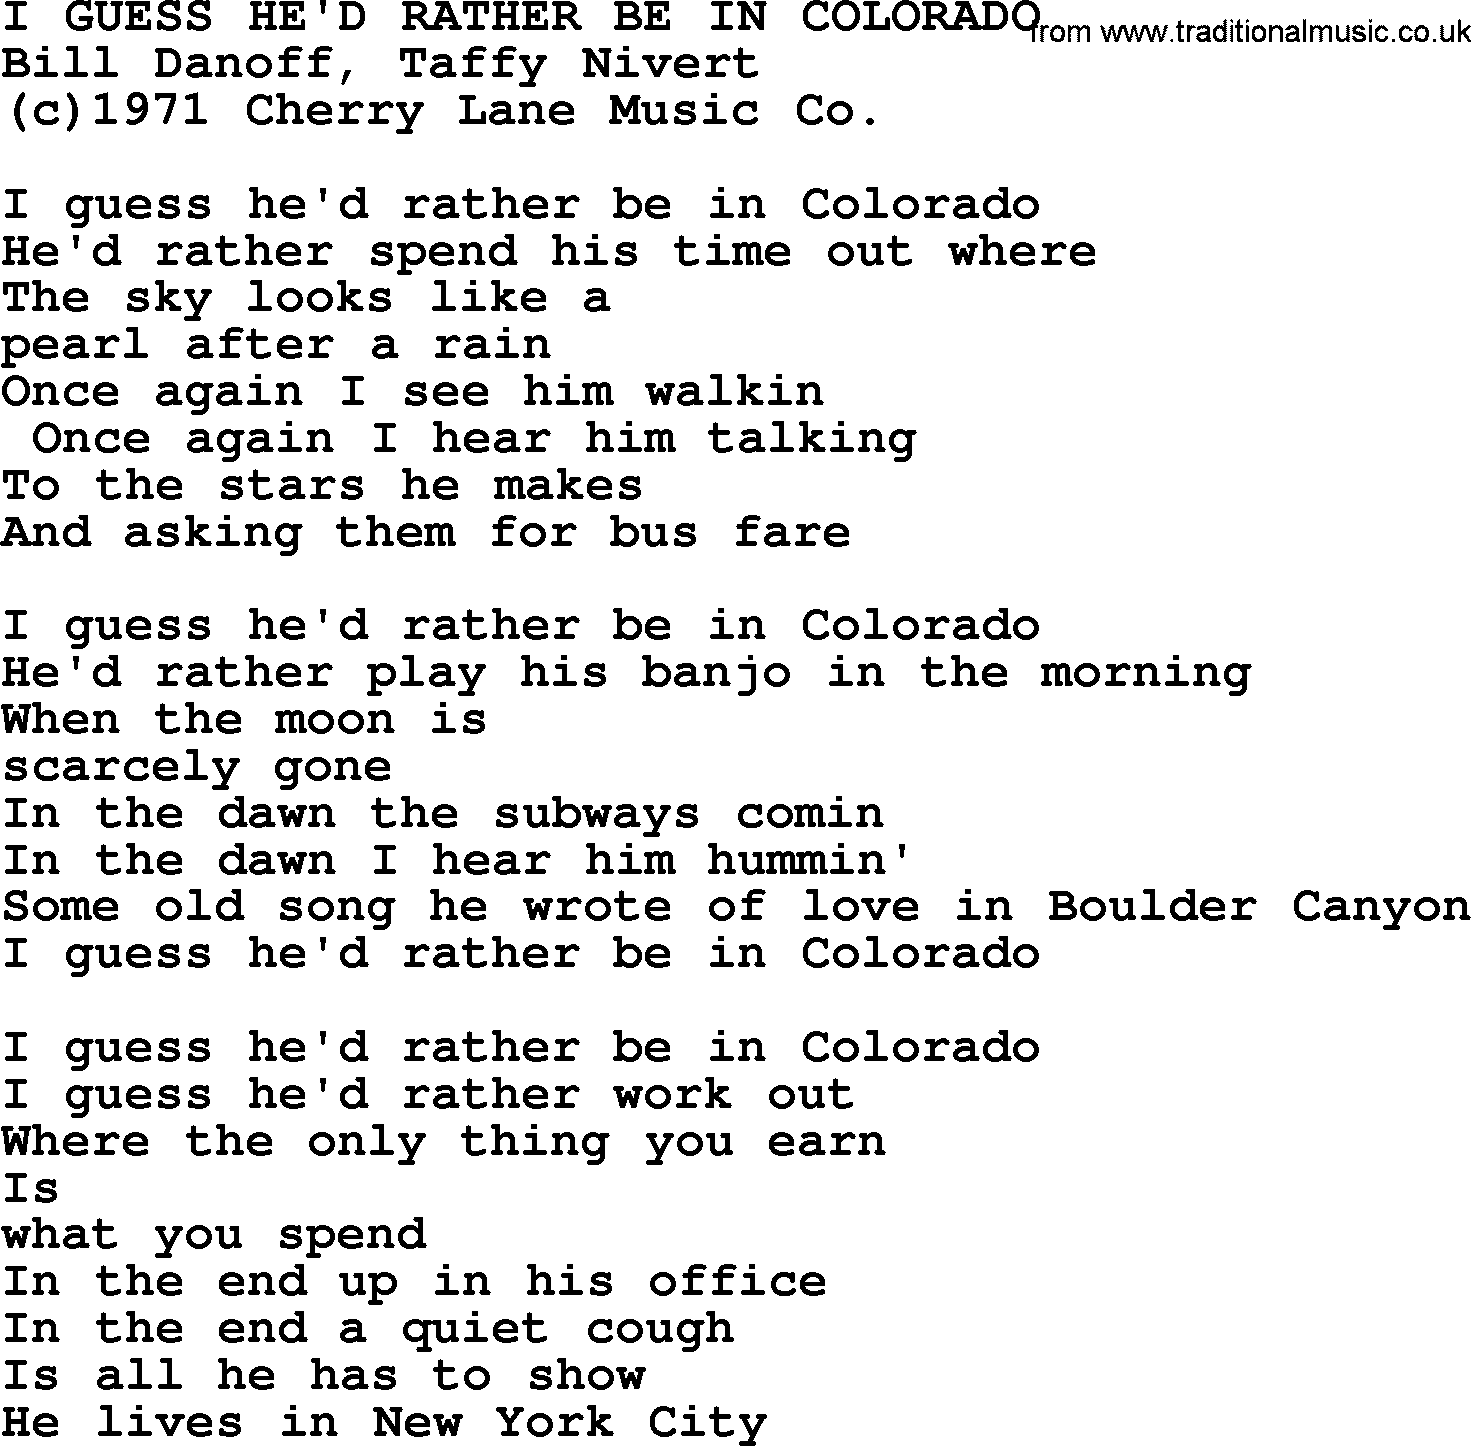 Peter Paul And Mary Song I Guess Hed Rather Be In Colorado Lyrics